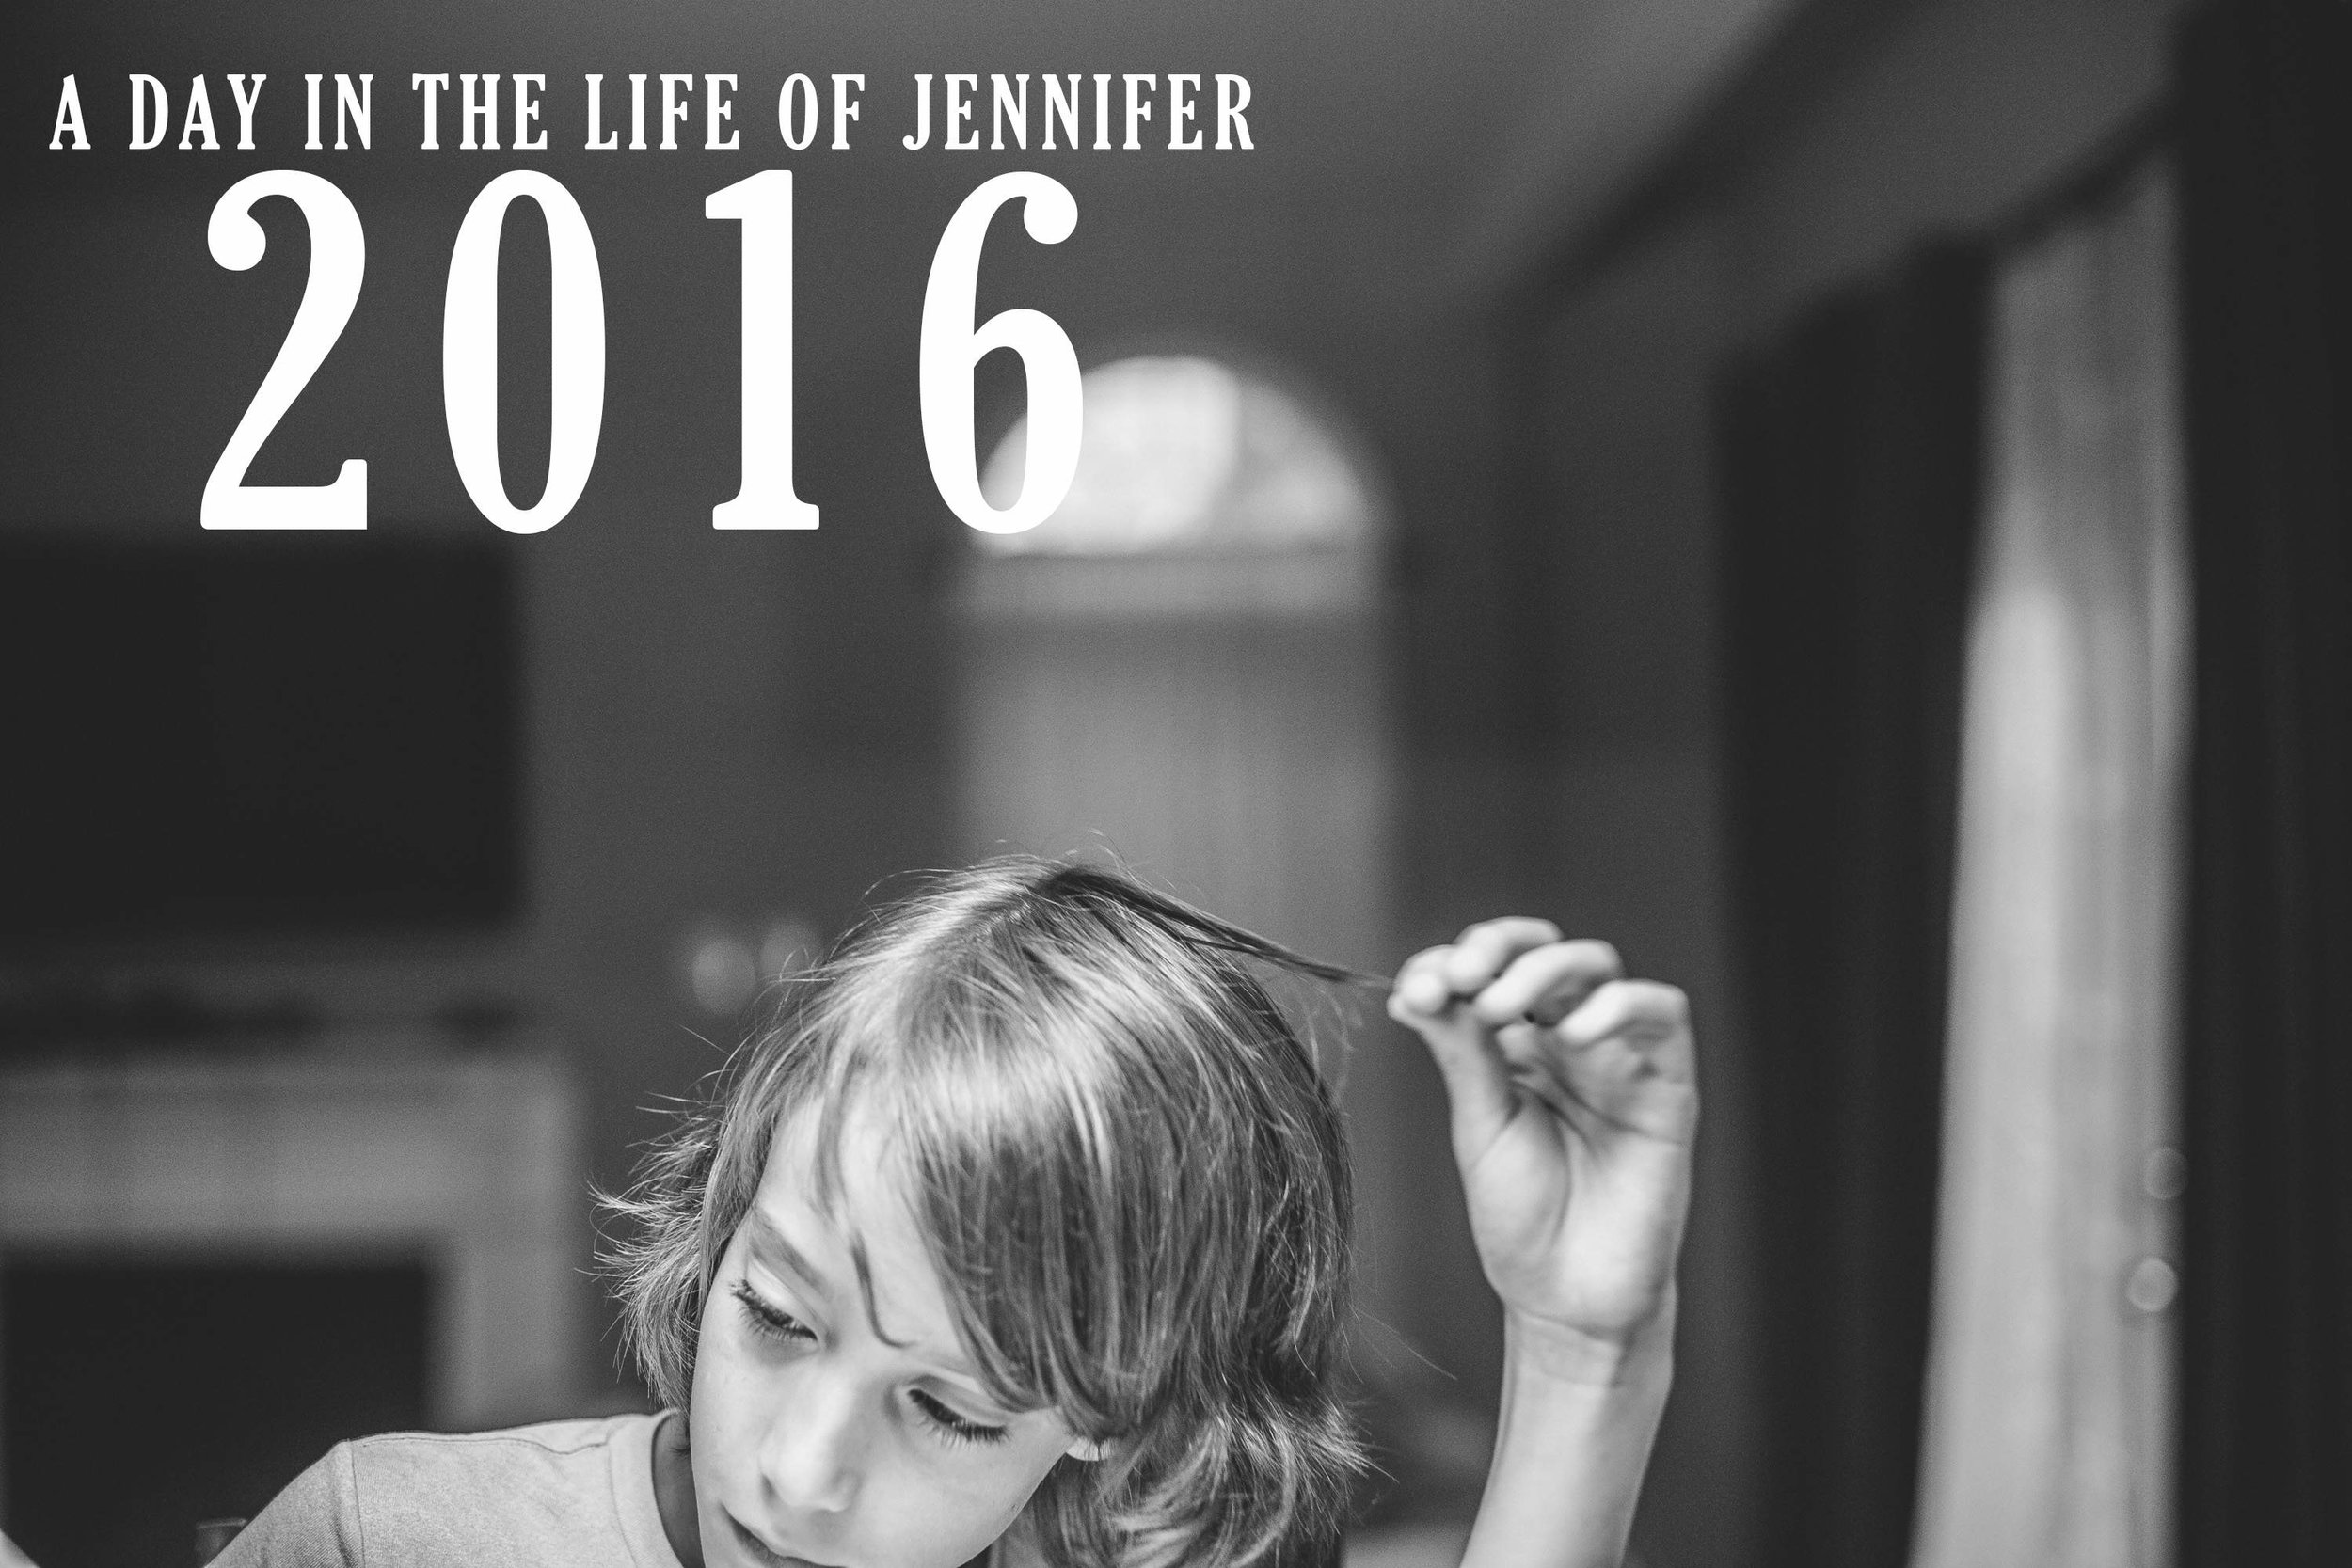 Jennifer Day in the Life 2016